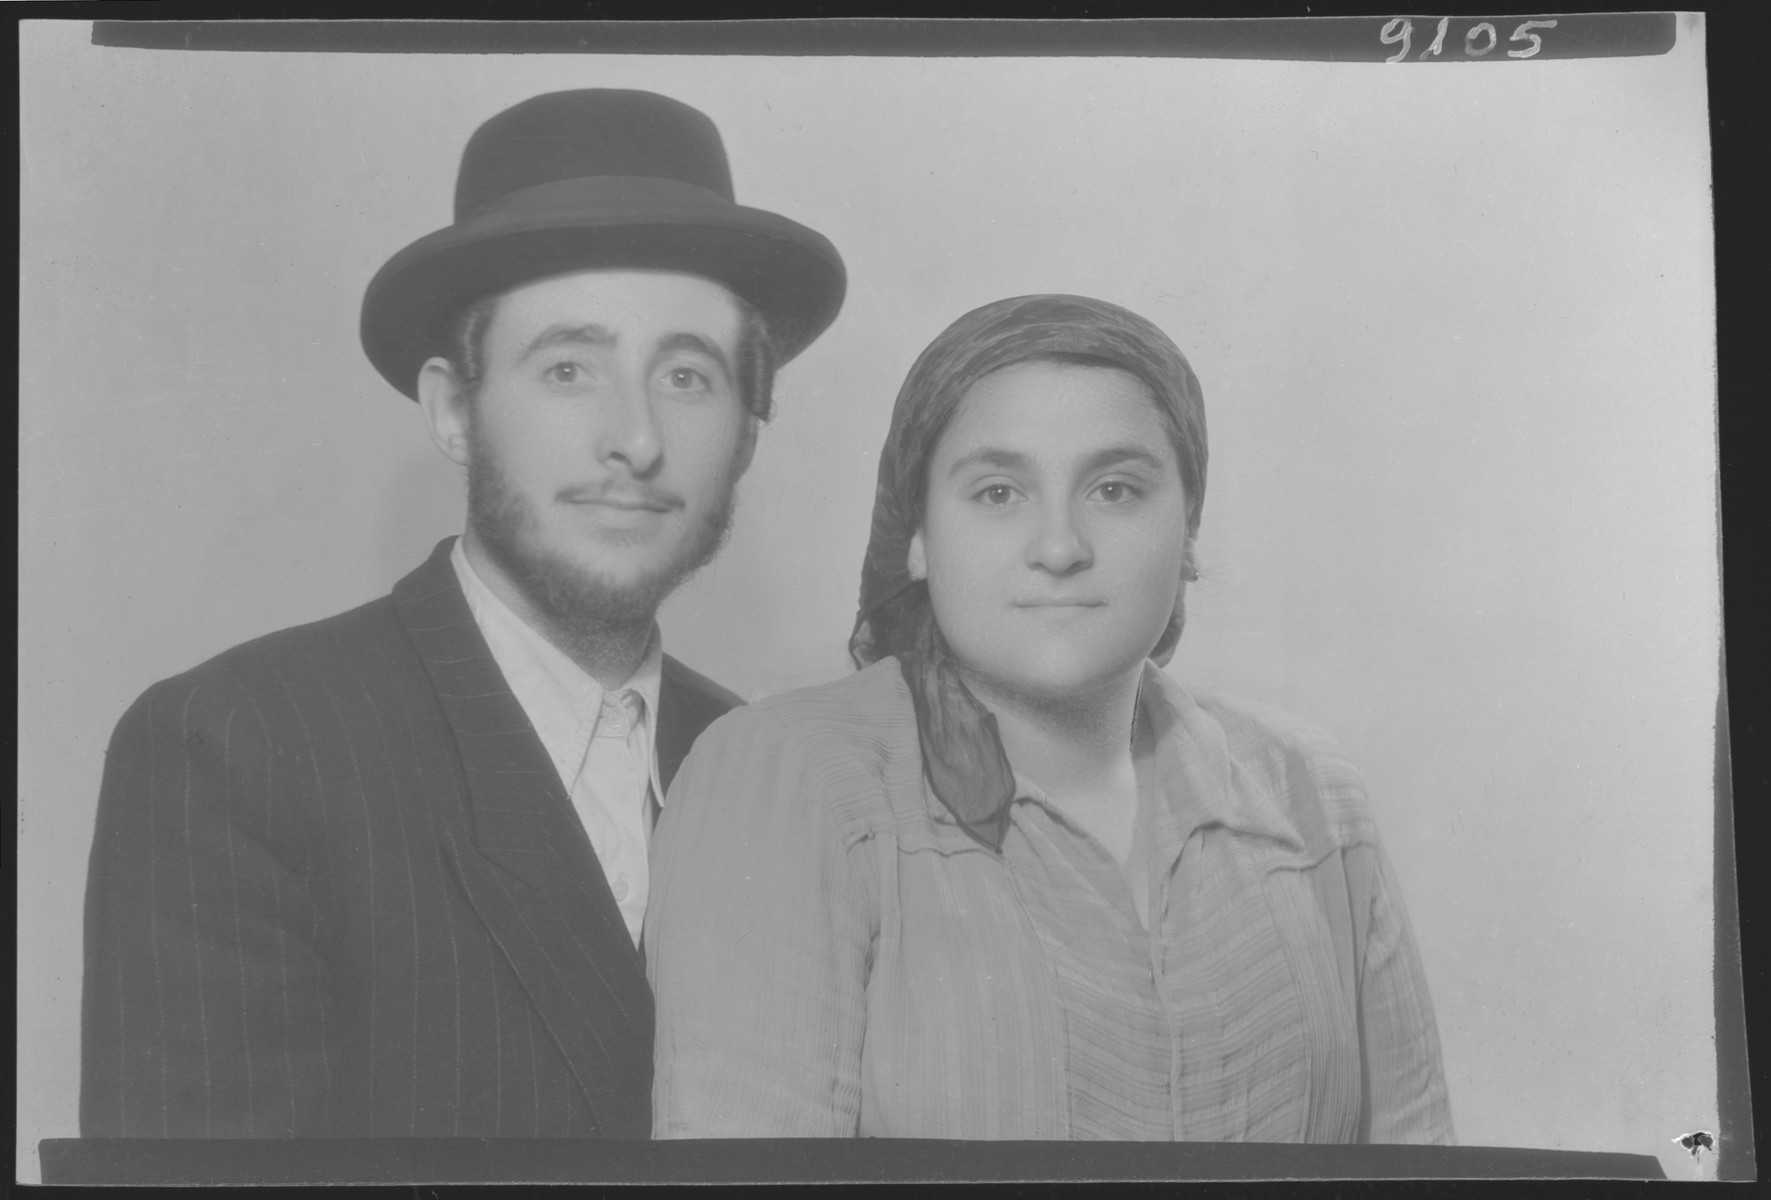 Studio portrait of Chaim Adler and his wife.